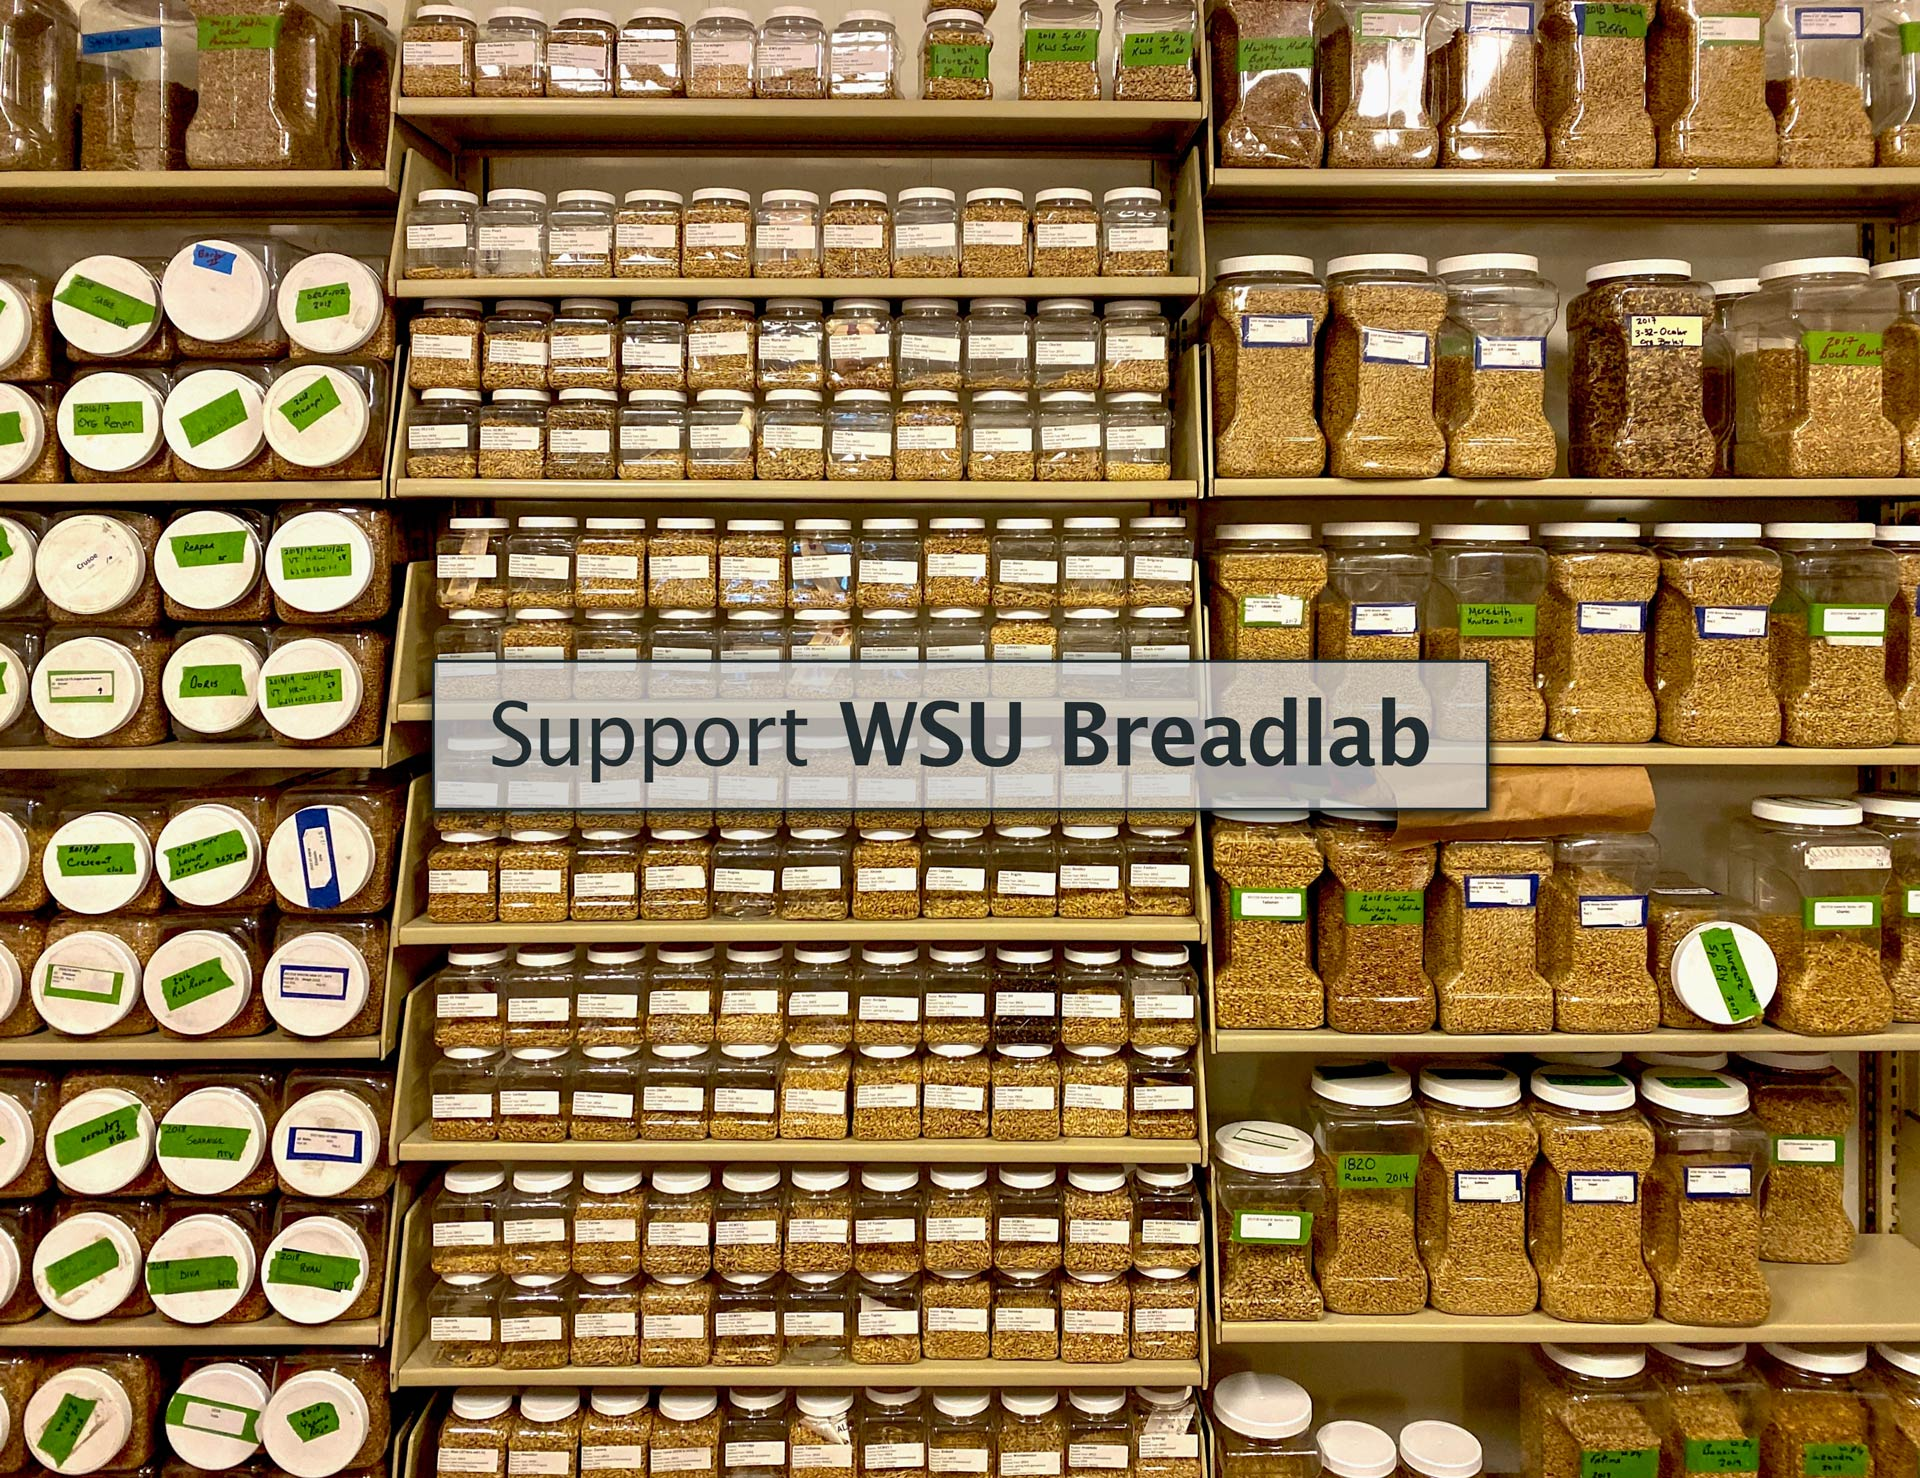 """Support WSU Breadlab"" over image of shelves loaded with clear containers of grain."